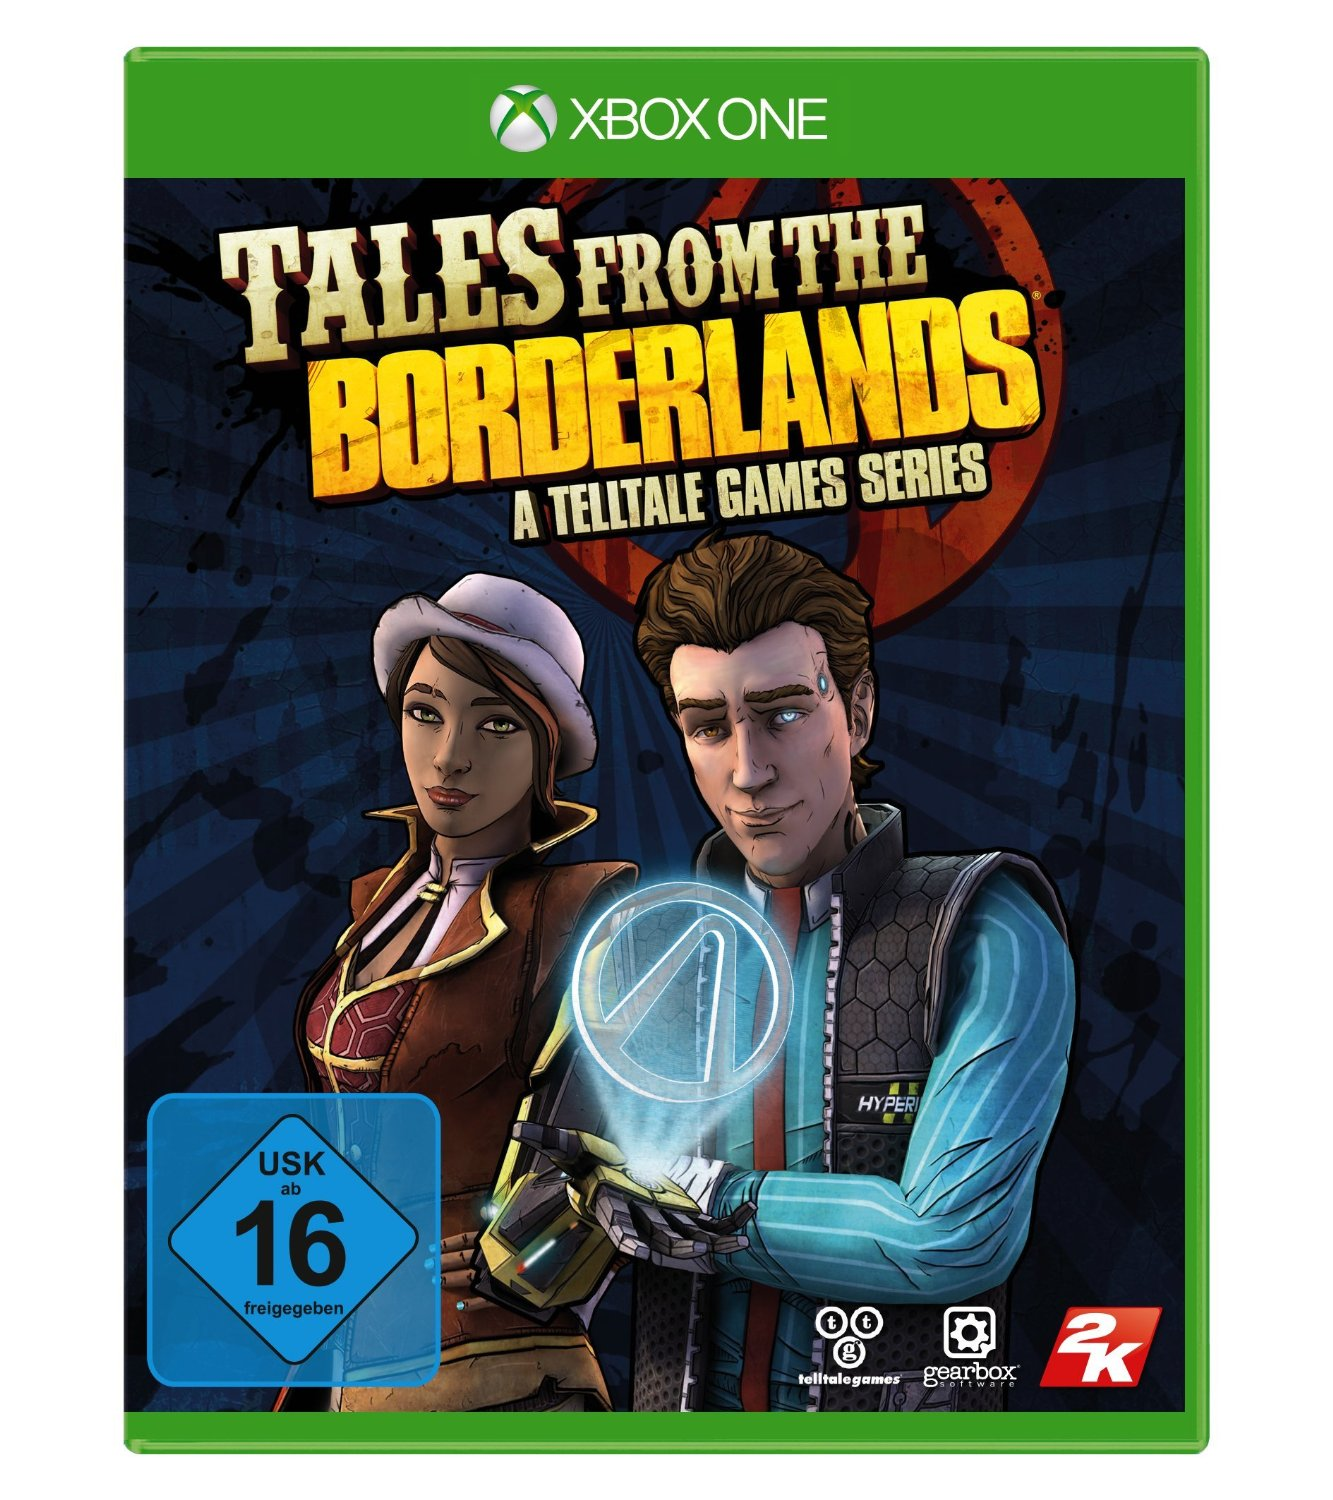 Tales from the Borderlands (XBLA)